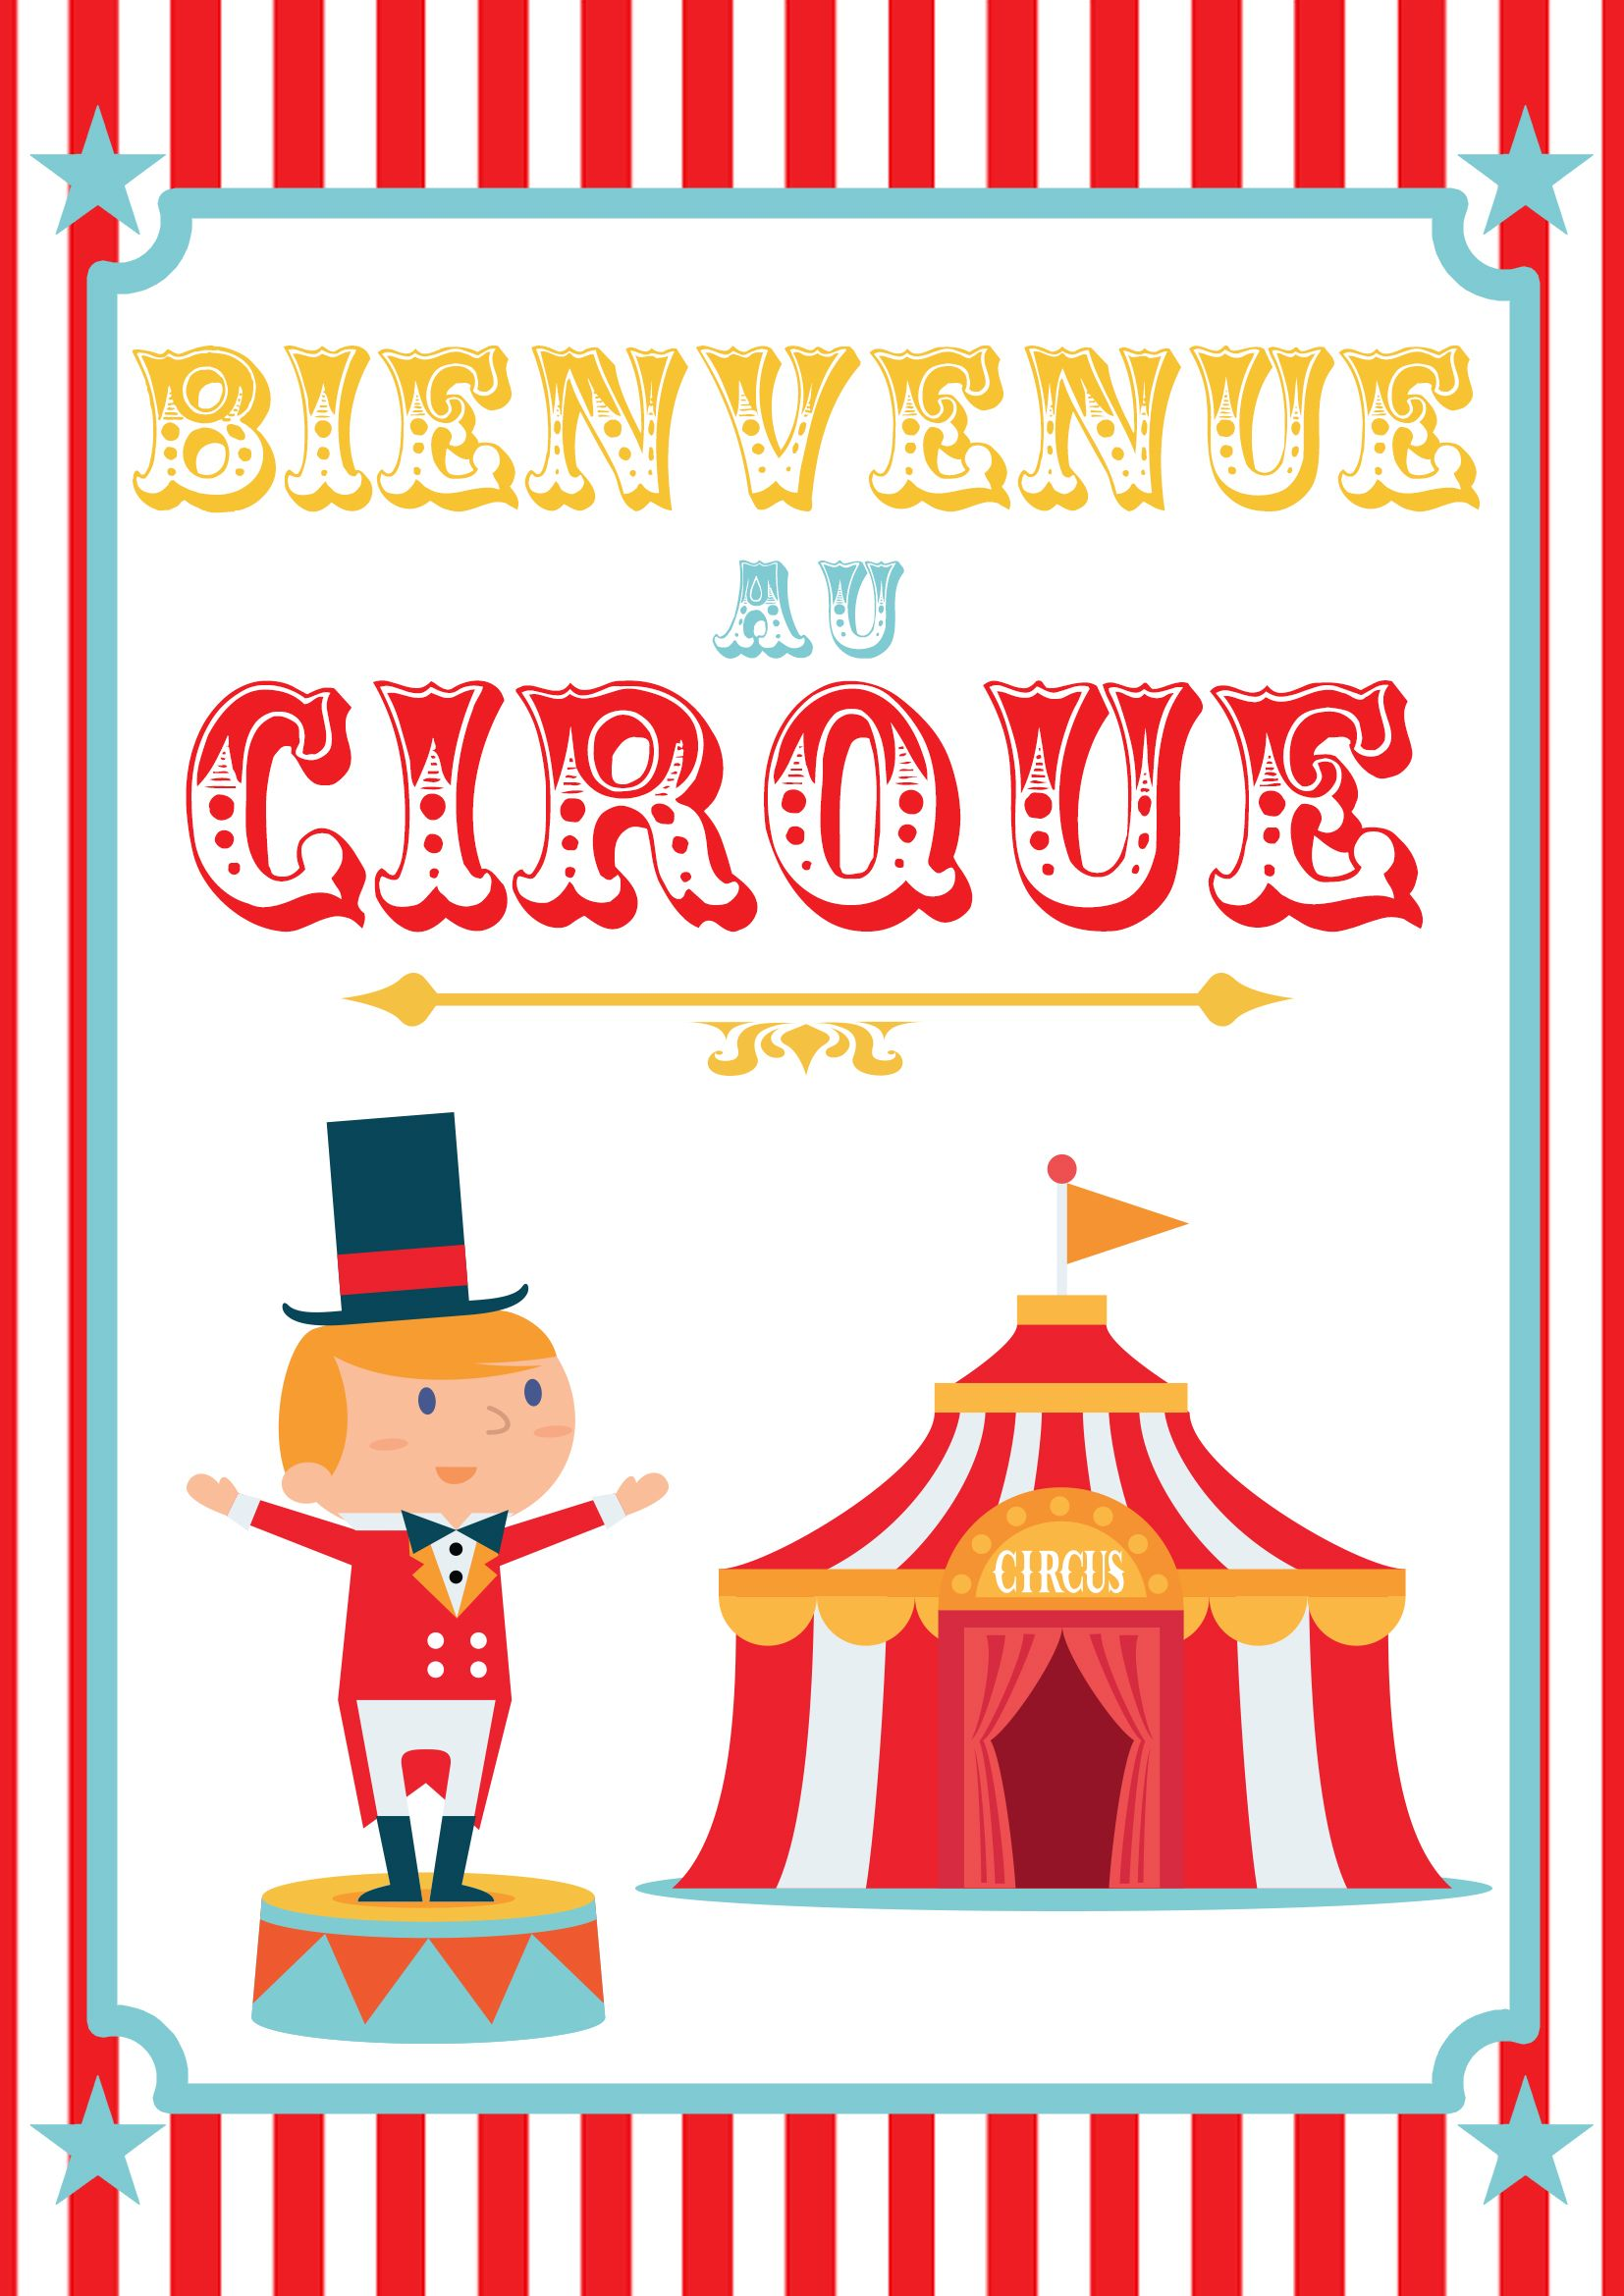 poster cirque imprimer anniversaire pinterest cirque anniversaires et maternelle. Black Bedroom Furniture Sets. Home Design Ideas